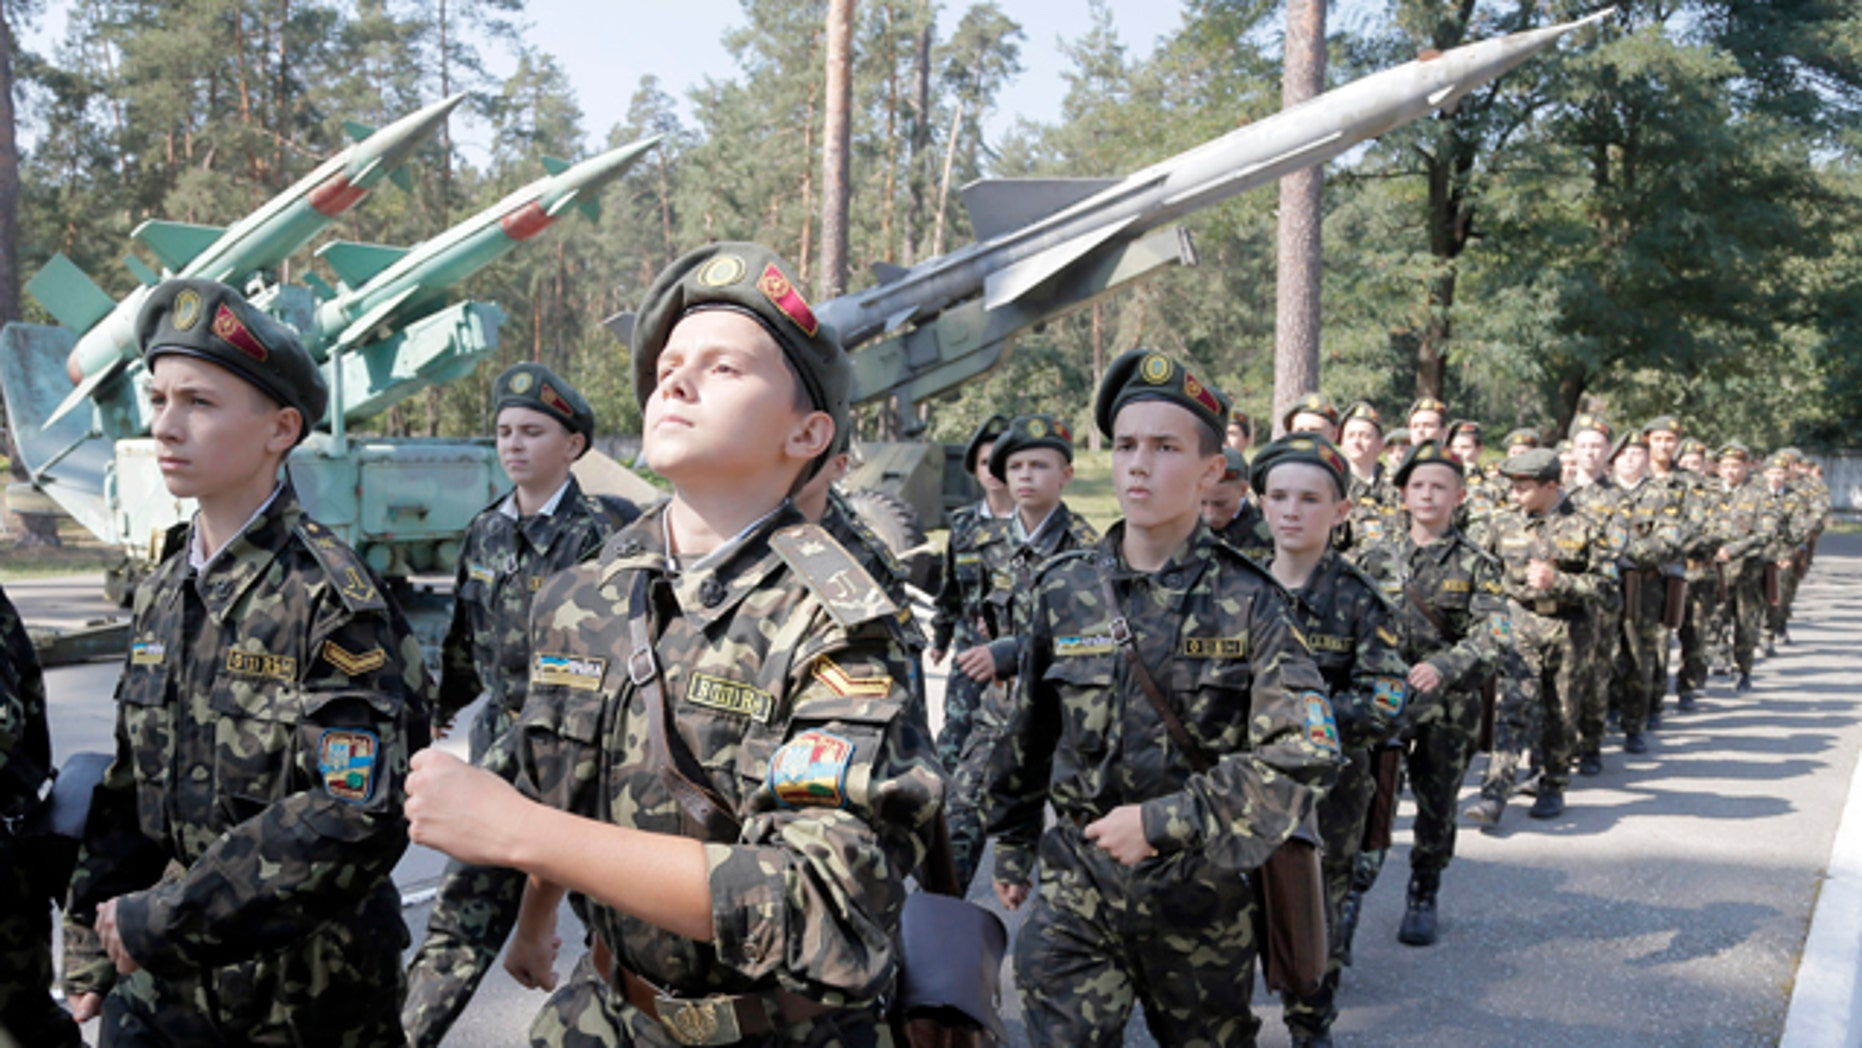 September 9, 2014: Students march during a military training exercise in a military school in Boyarka, near Kiev, Ukraine. (AP Photo/Efrem Lukatsky)